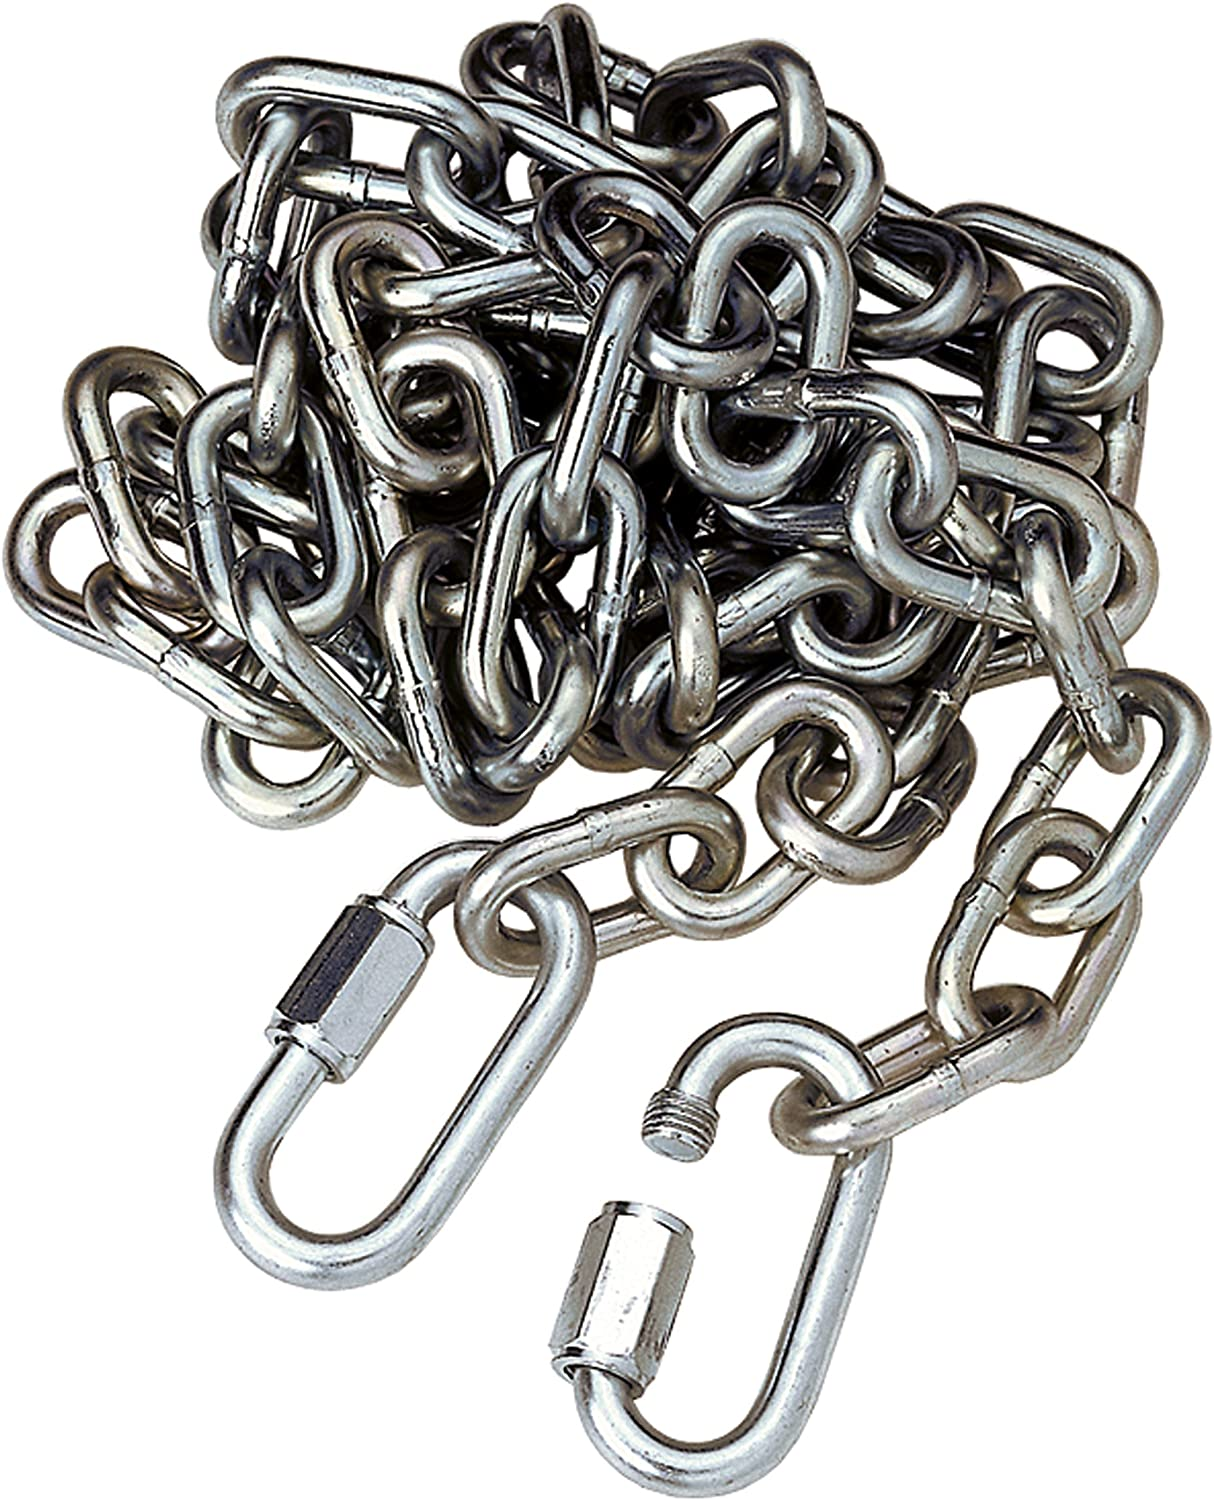 Tough Chain And High-Security Padlock